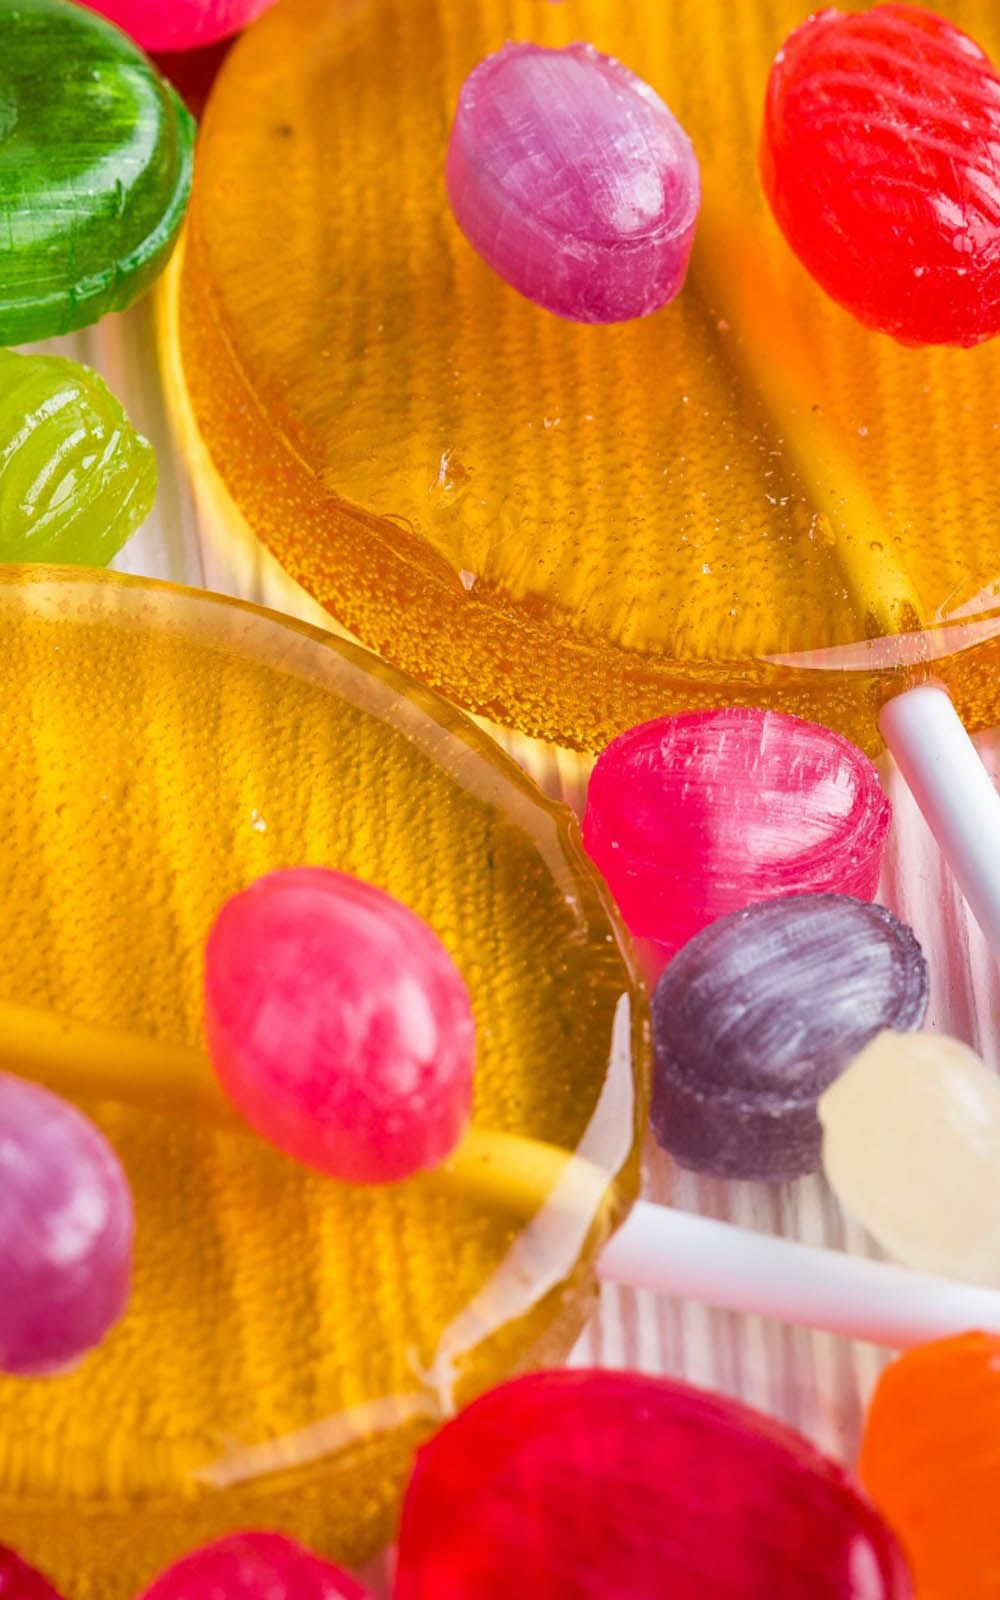 Colorful Lollipops And Candies 4k Ultra Hd Mobile Wallpaper Lollipop Mobile Wallpaper Wallpaper